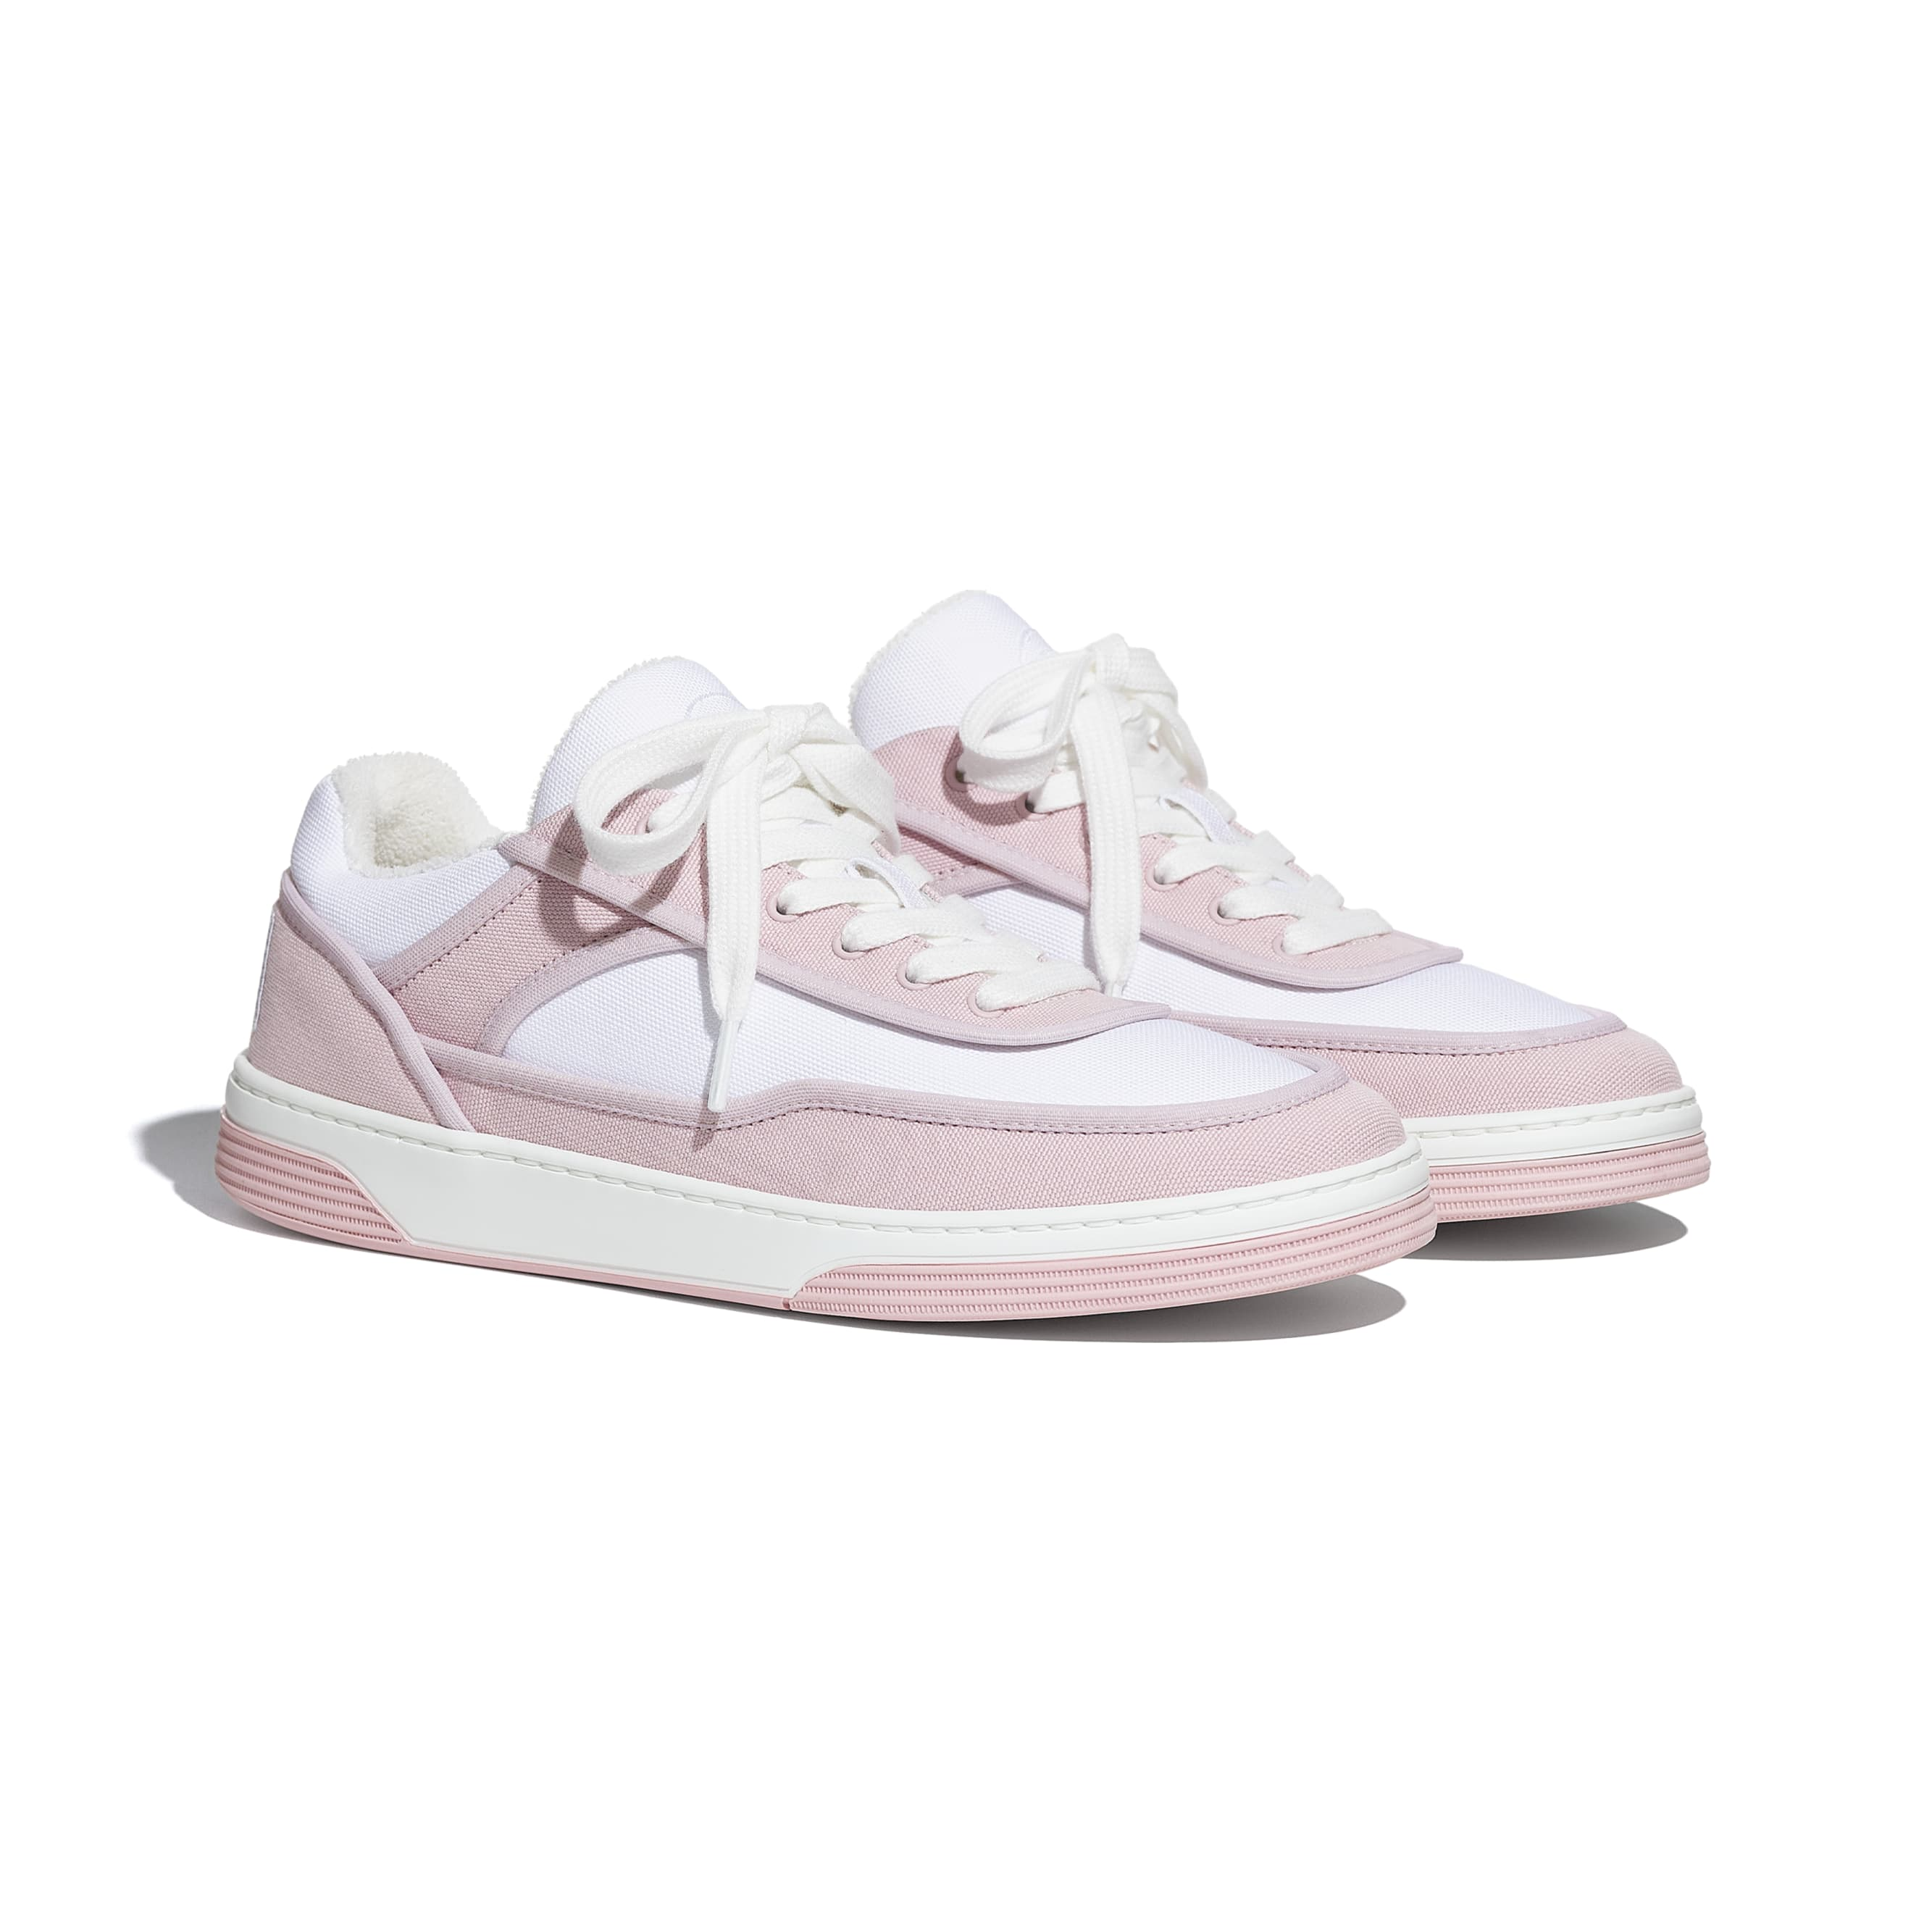 Trainers - Pink & White - Fabric - CHANEL - Alternative view - see standard sized version